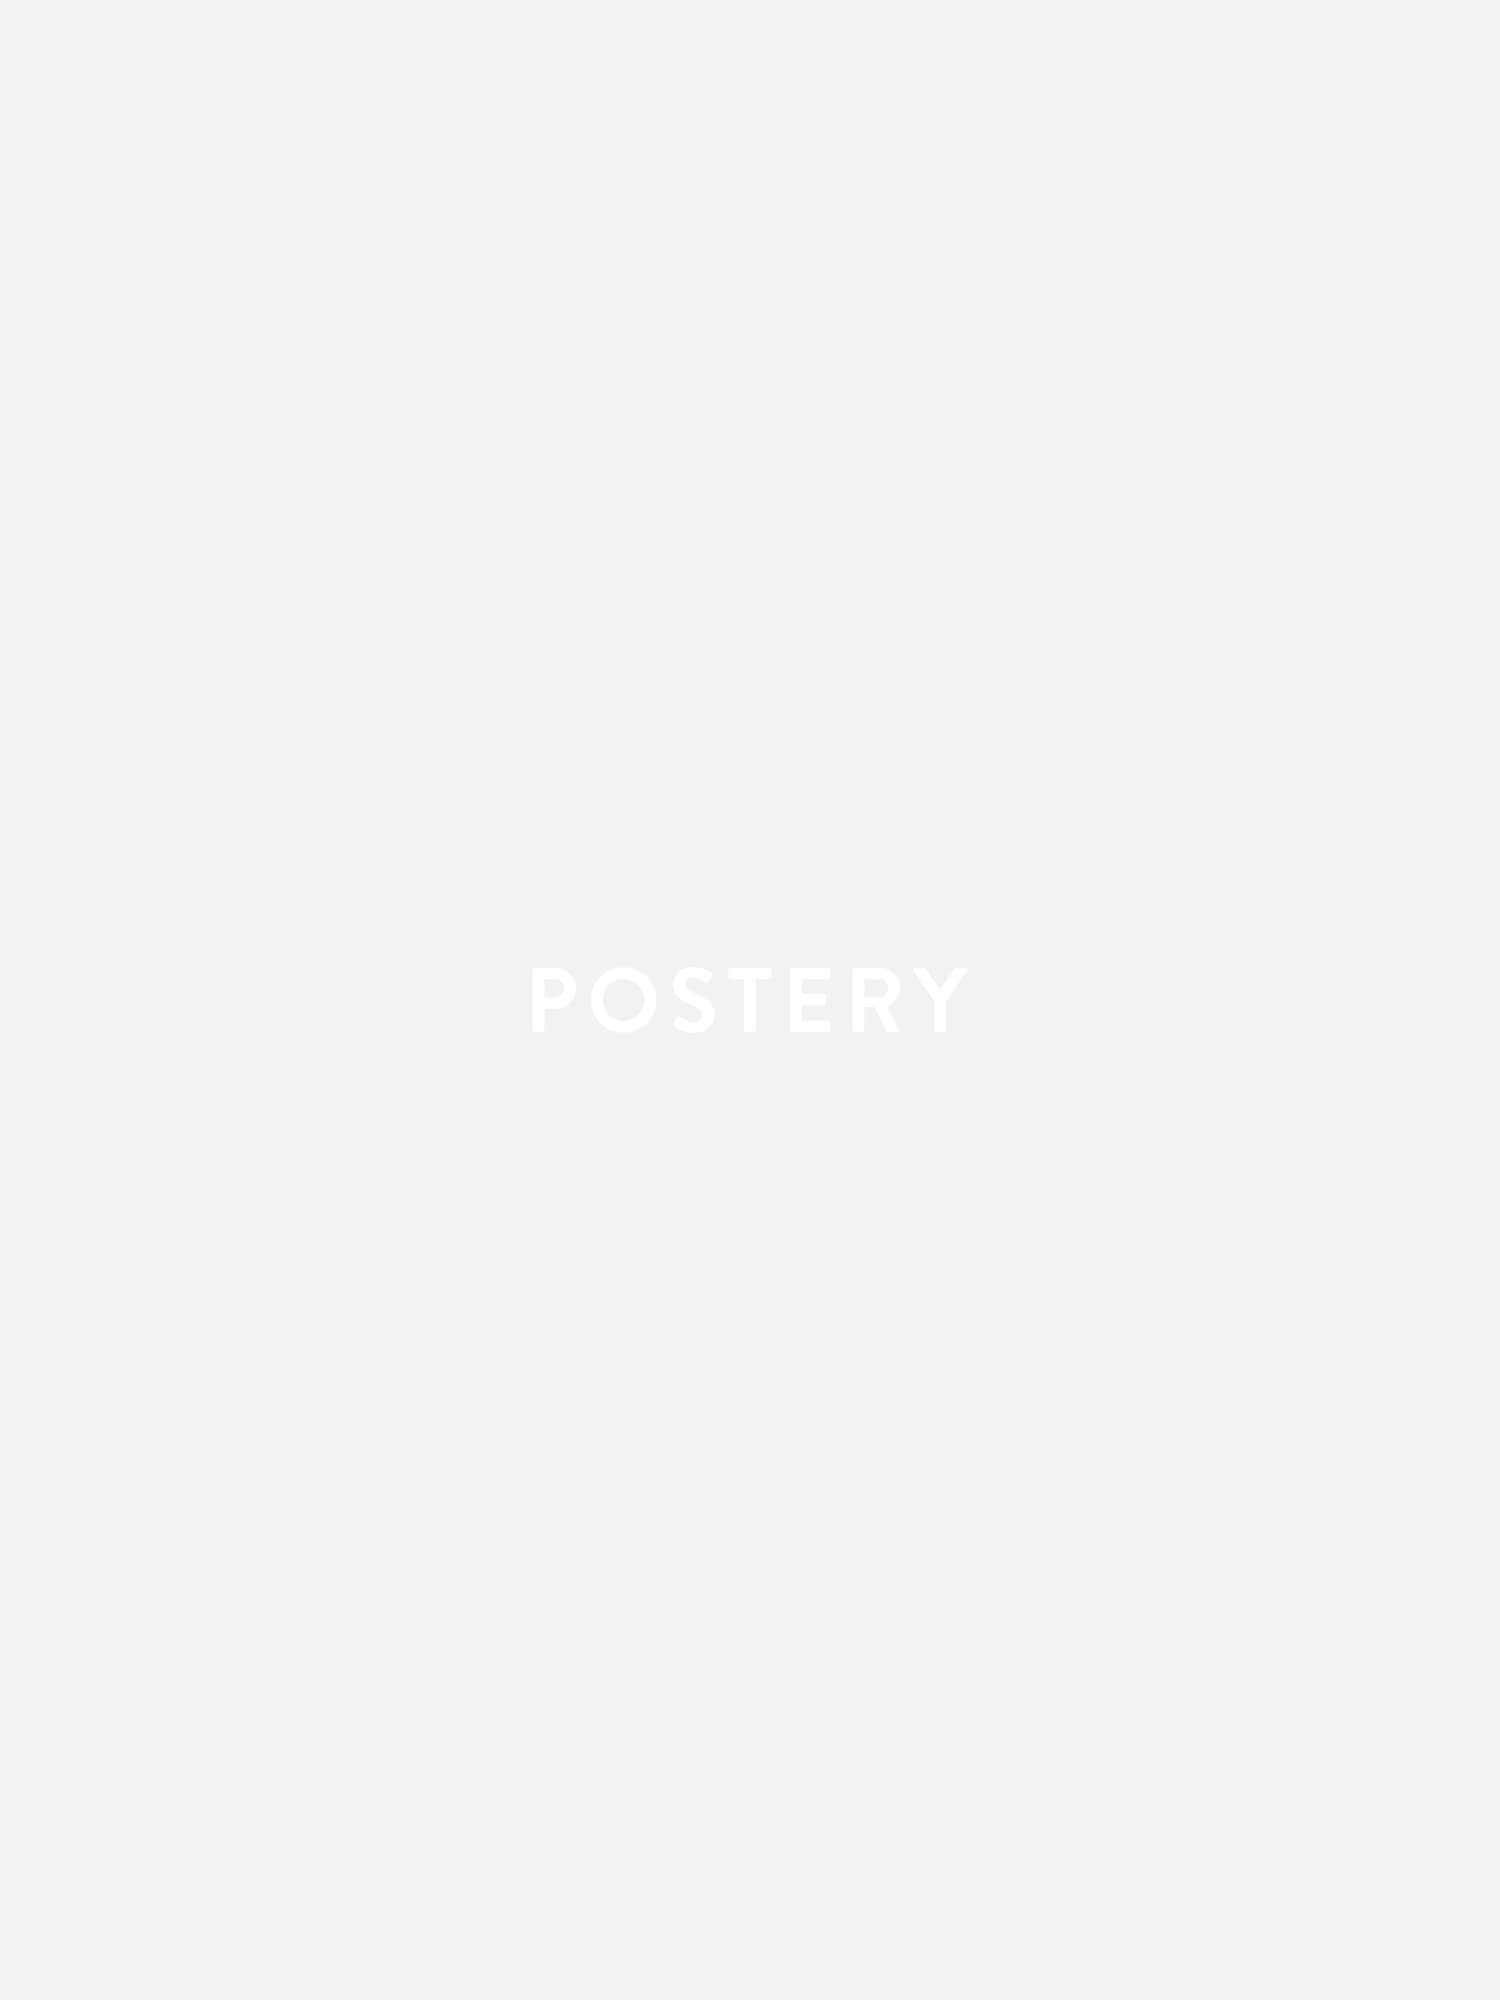 Black and White Poppy Poster